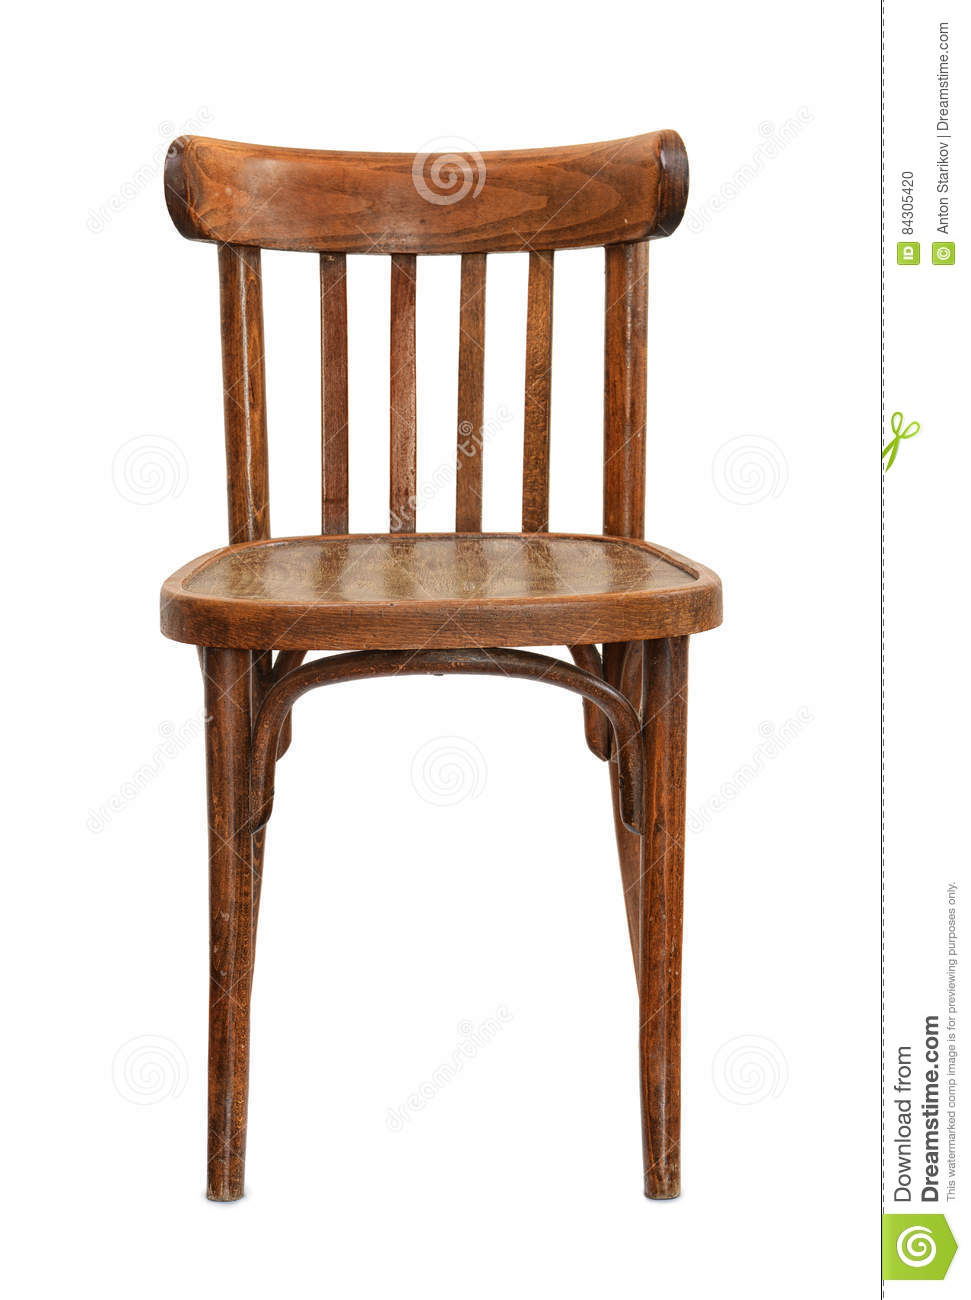 Wooden chair front view - Front View Of Old Wooden Chair Stock Photo